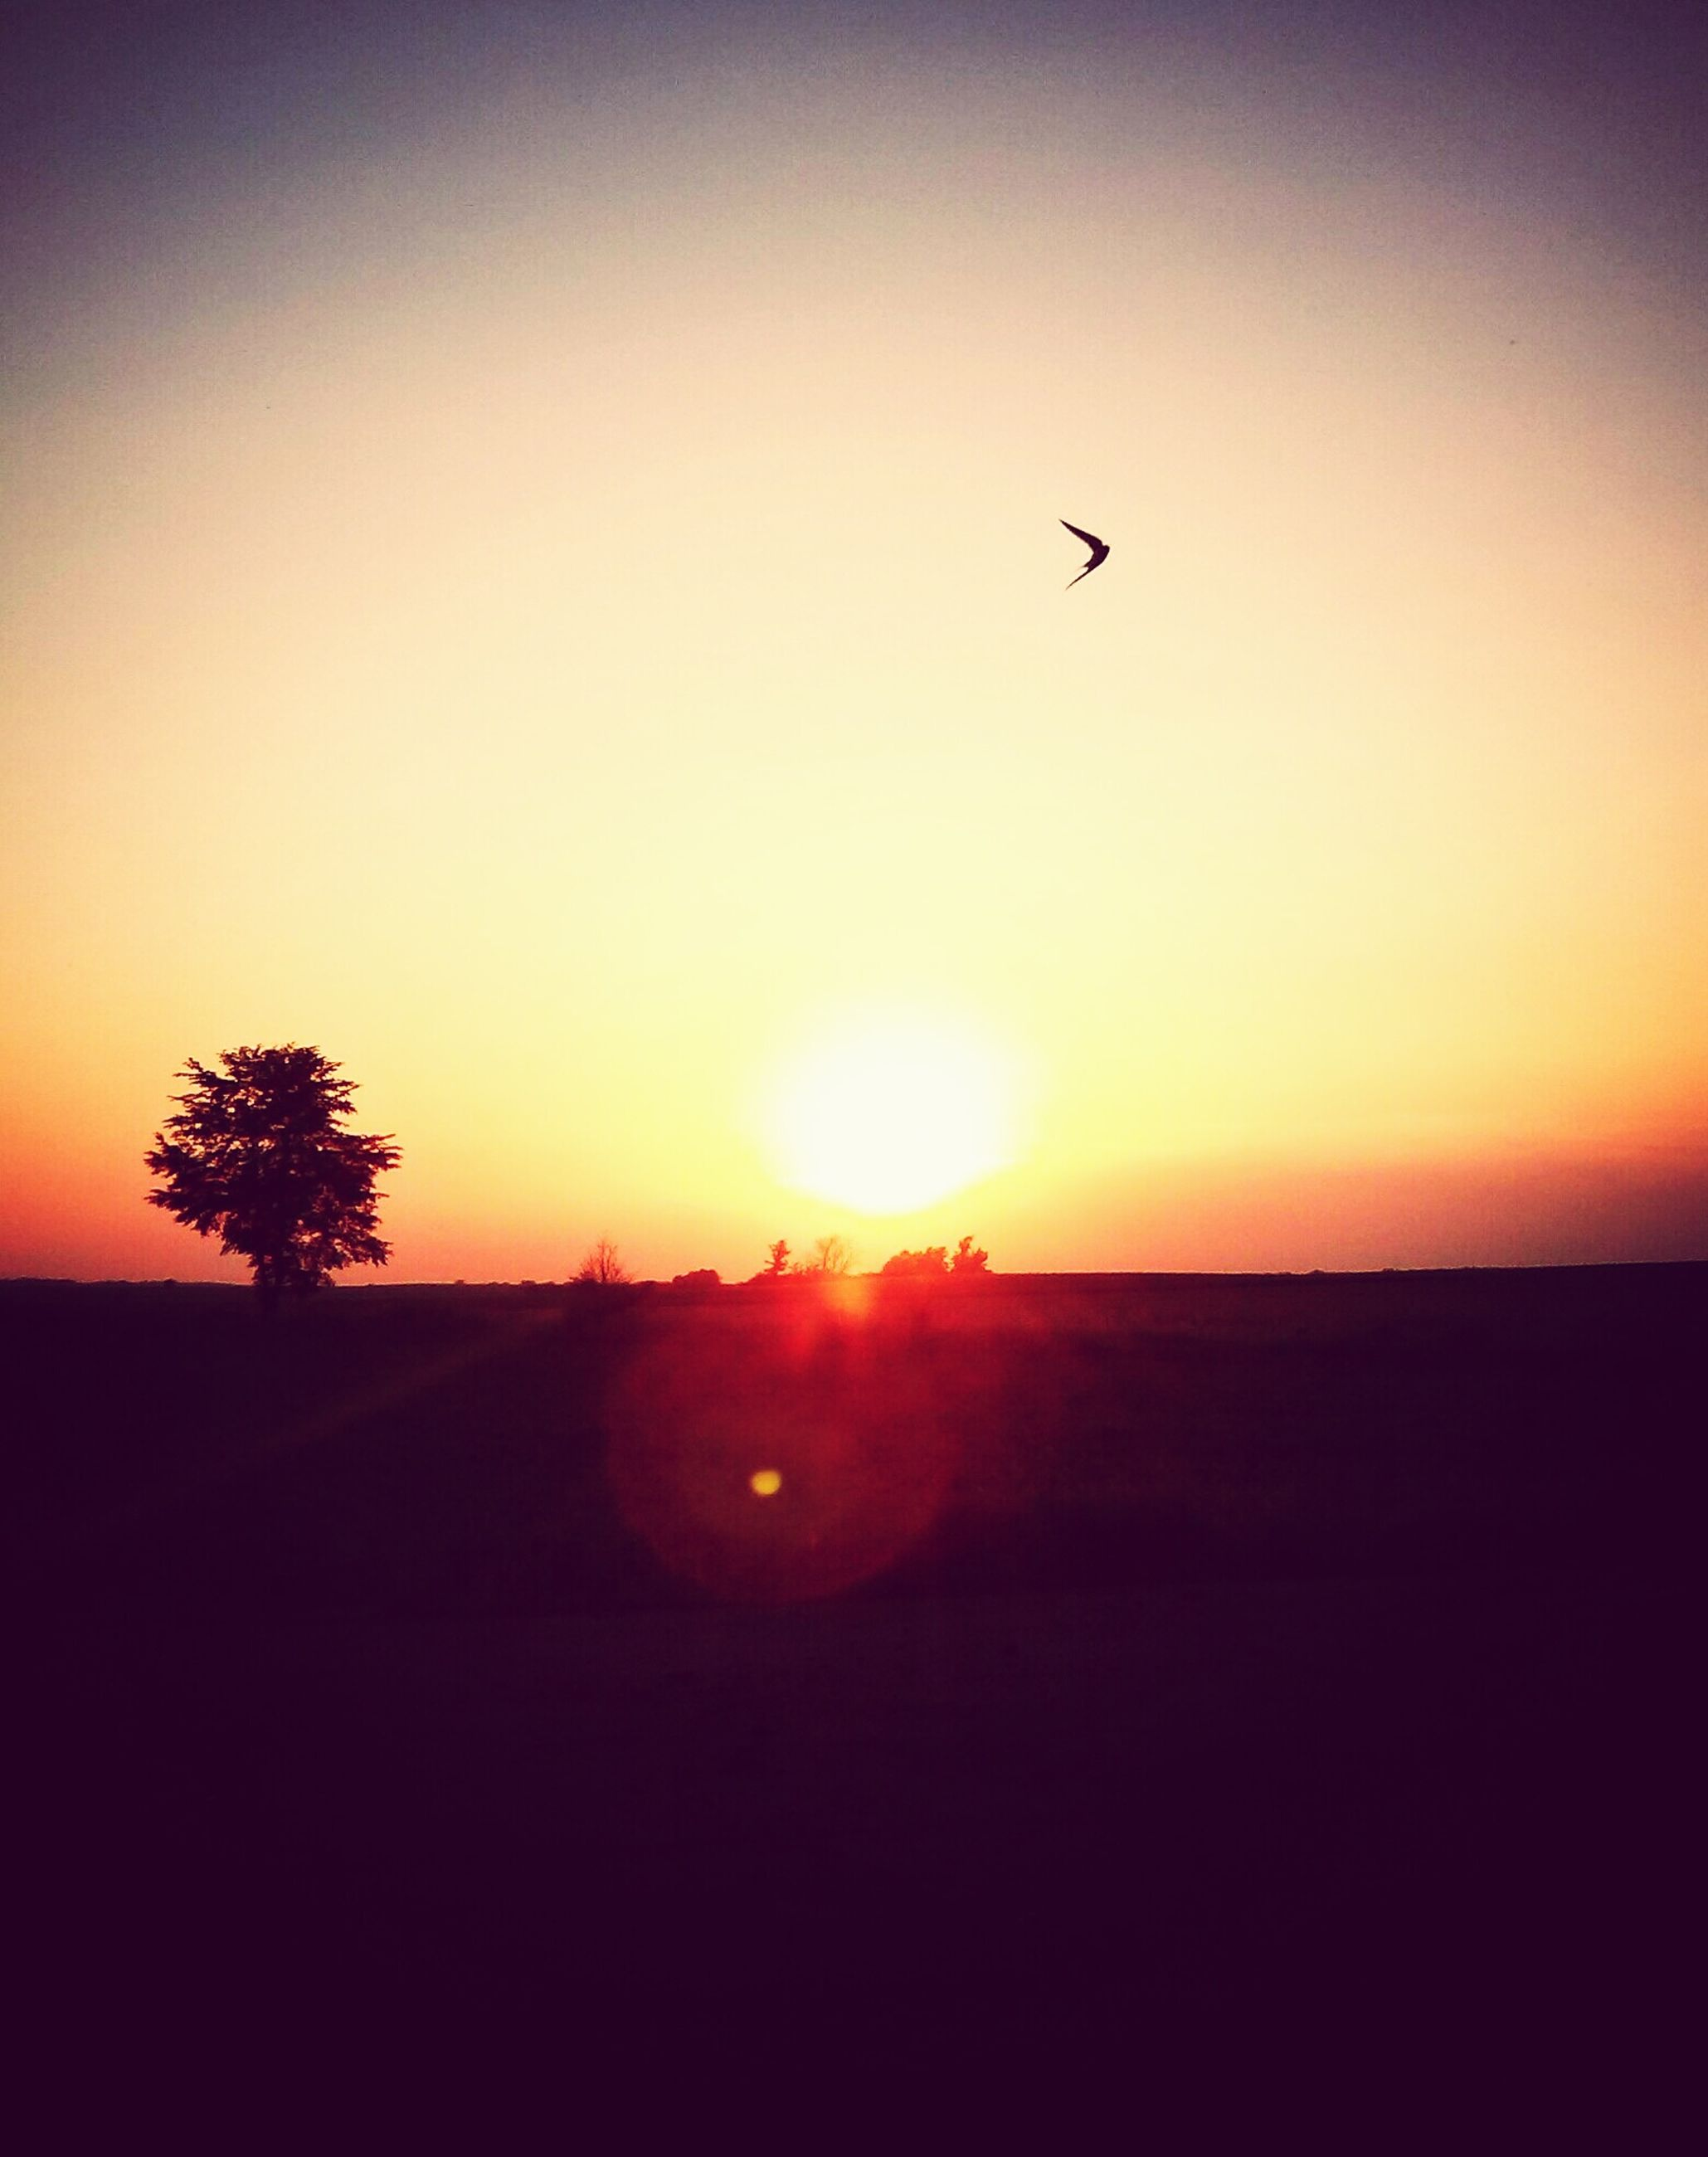 sunset, sun, silhouette, flying, orange color, scenics, bird, tranquil scene, beauty in nature, tranquility, animal themes, clear sky, copy space, nature, sky, idyllic, landscape, one animal, wildlife, sunlight